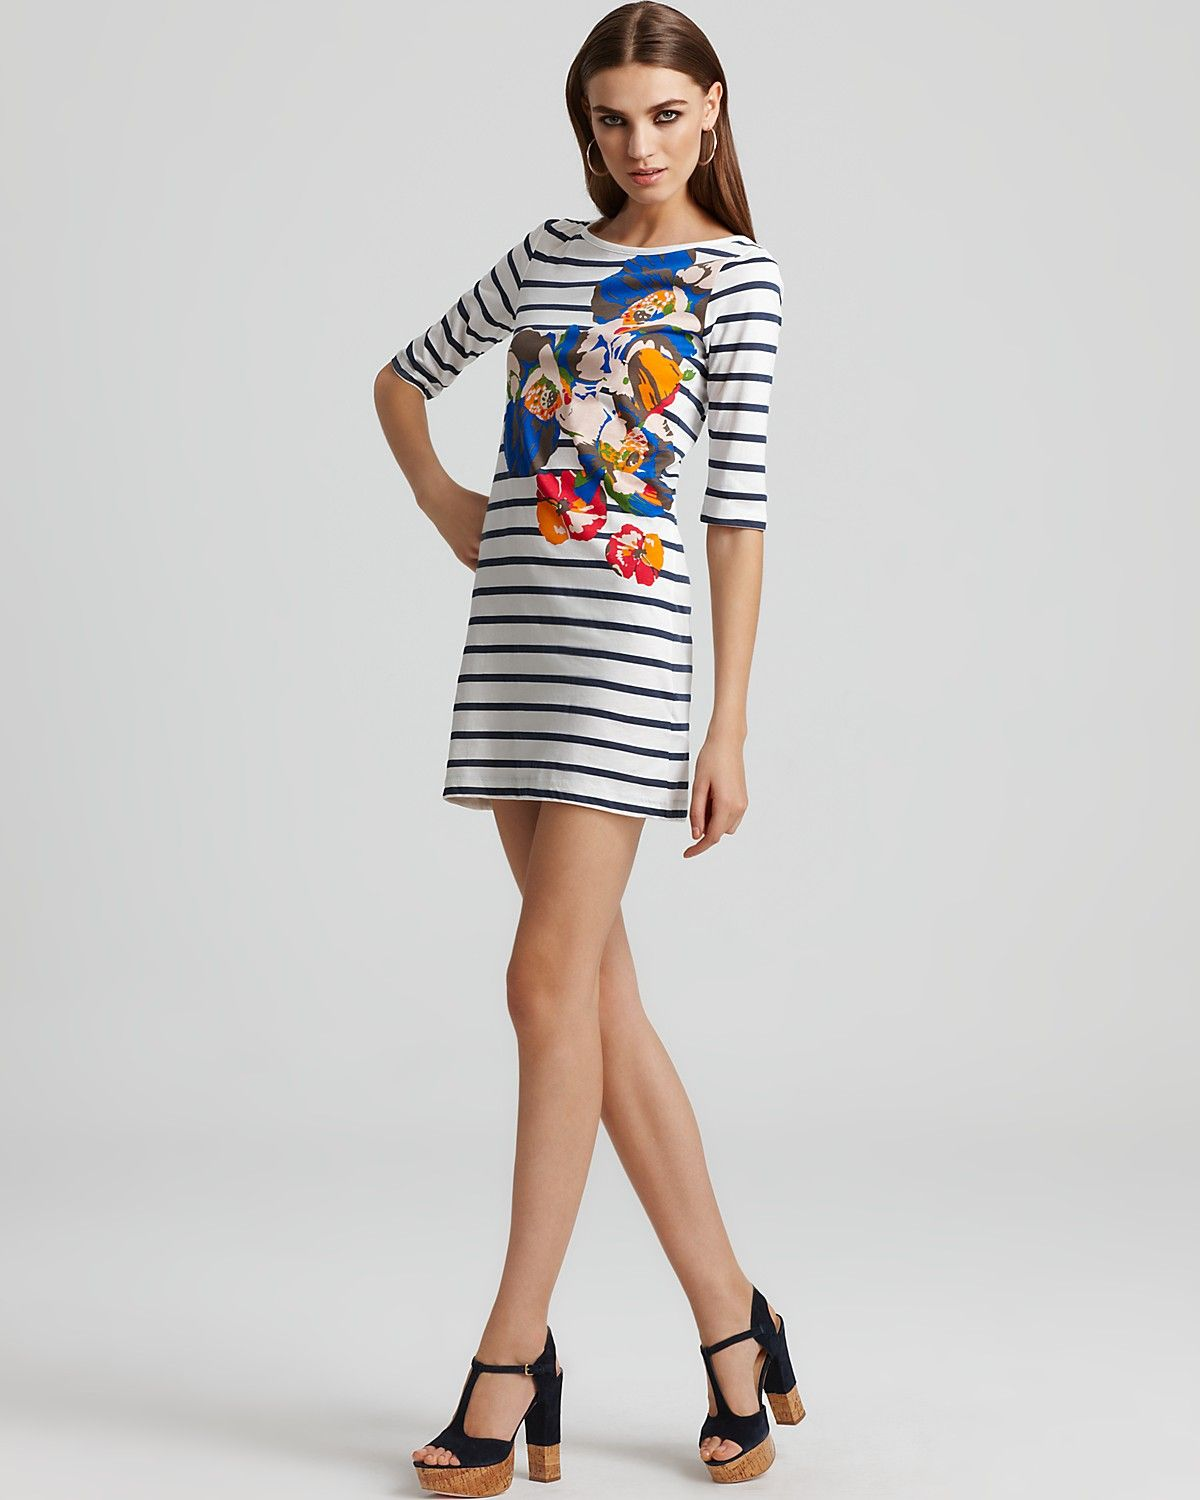 French Connection Stripe T Shirt Dress My Style